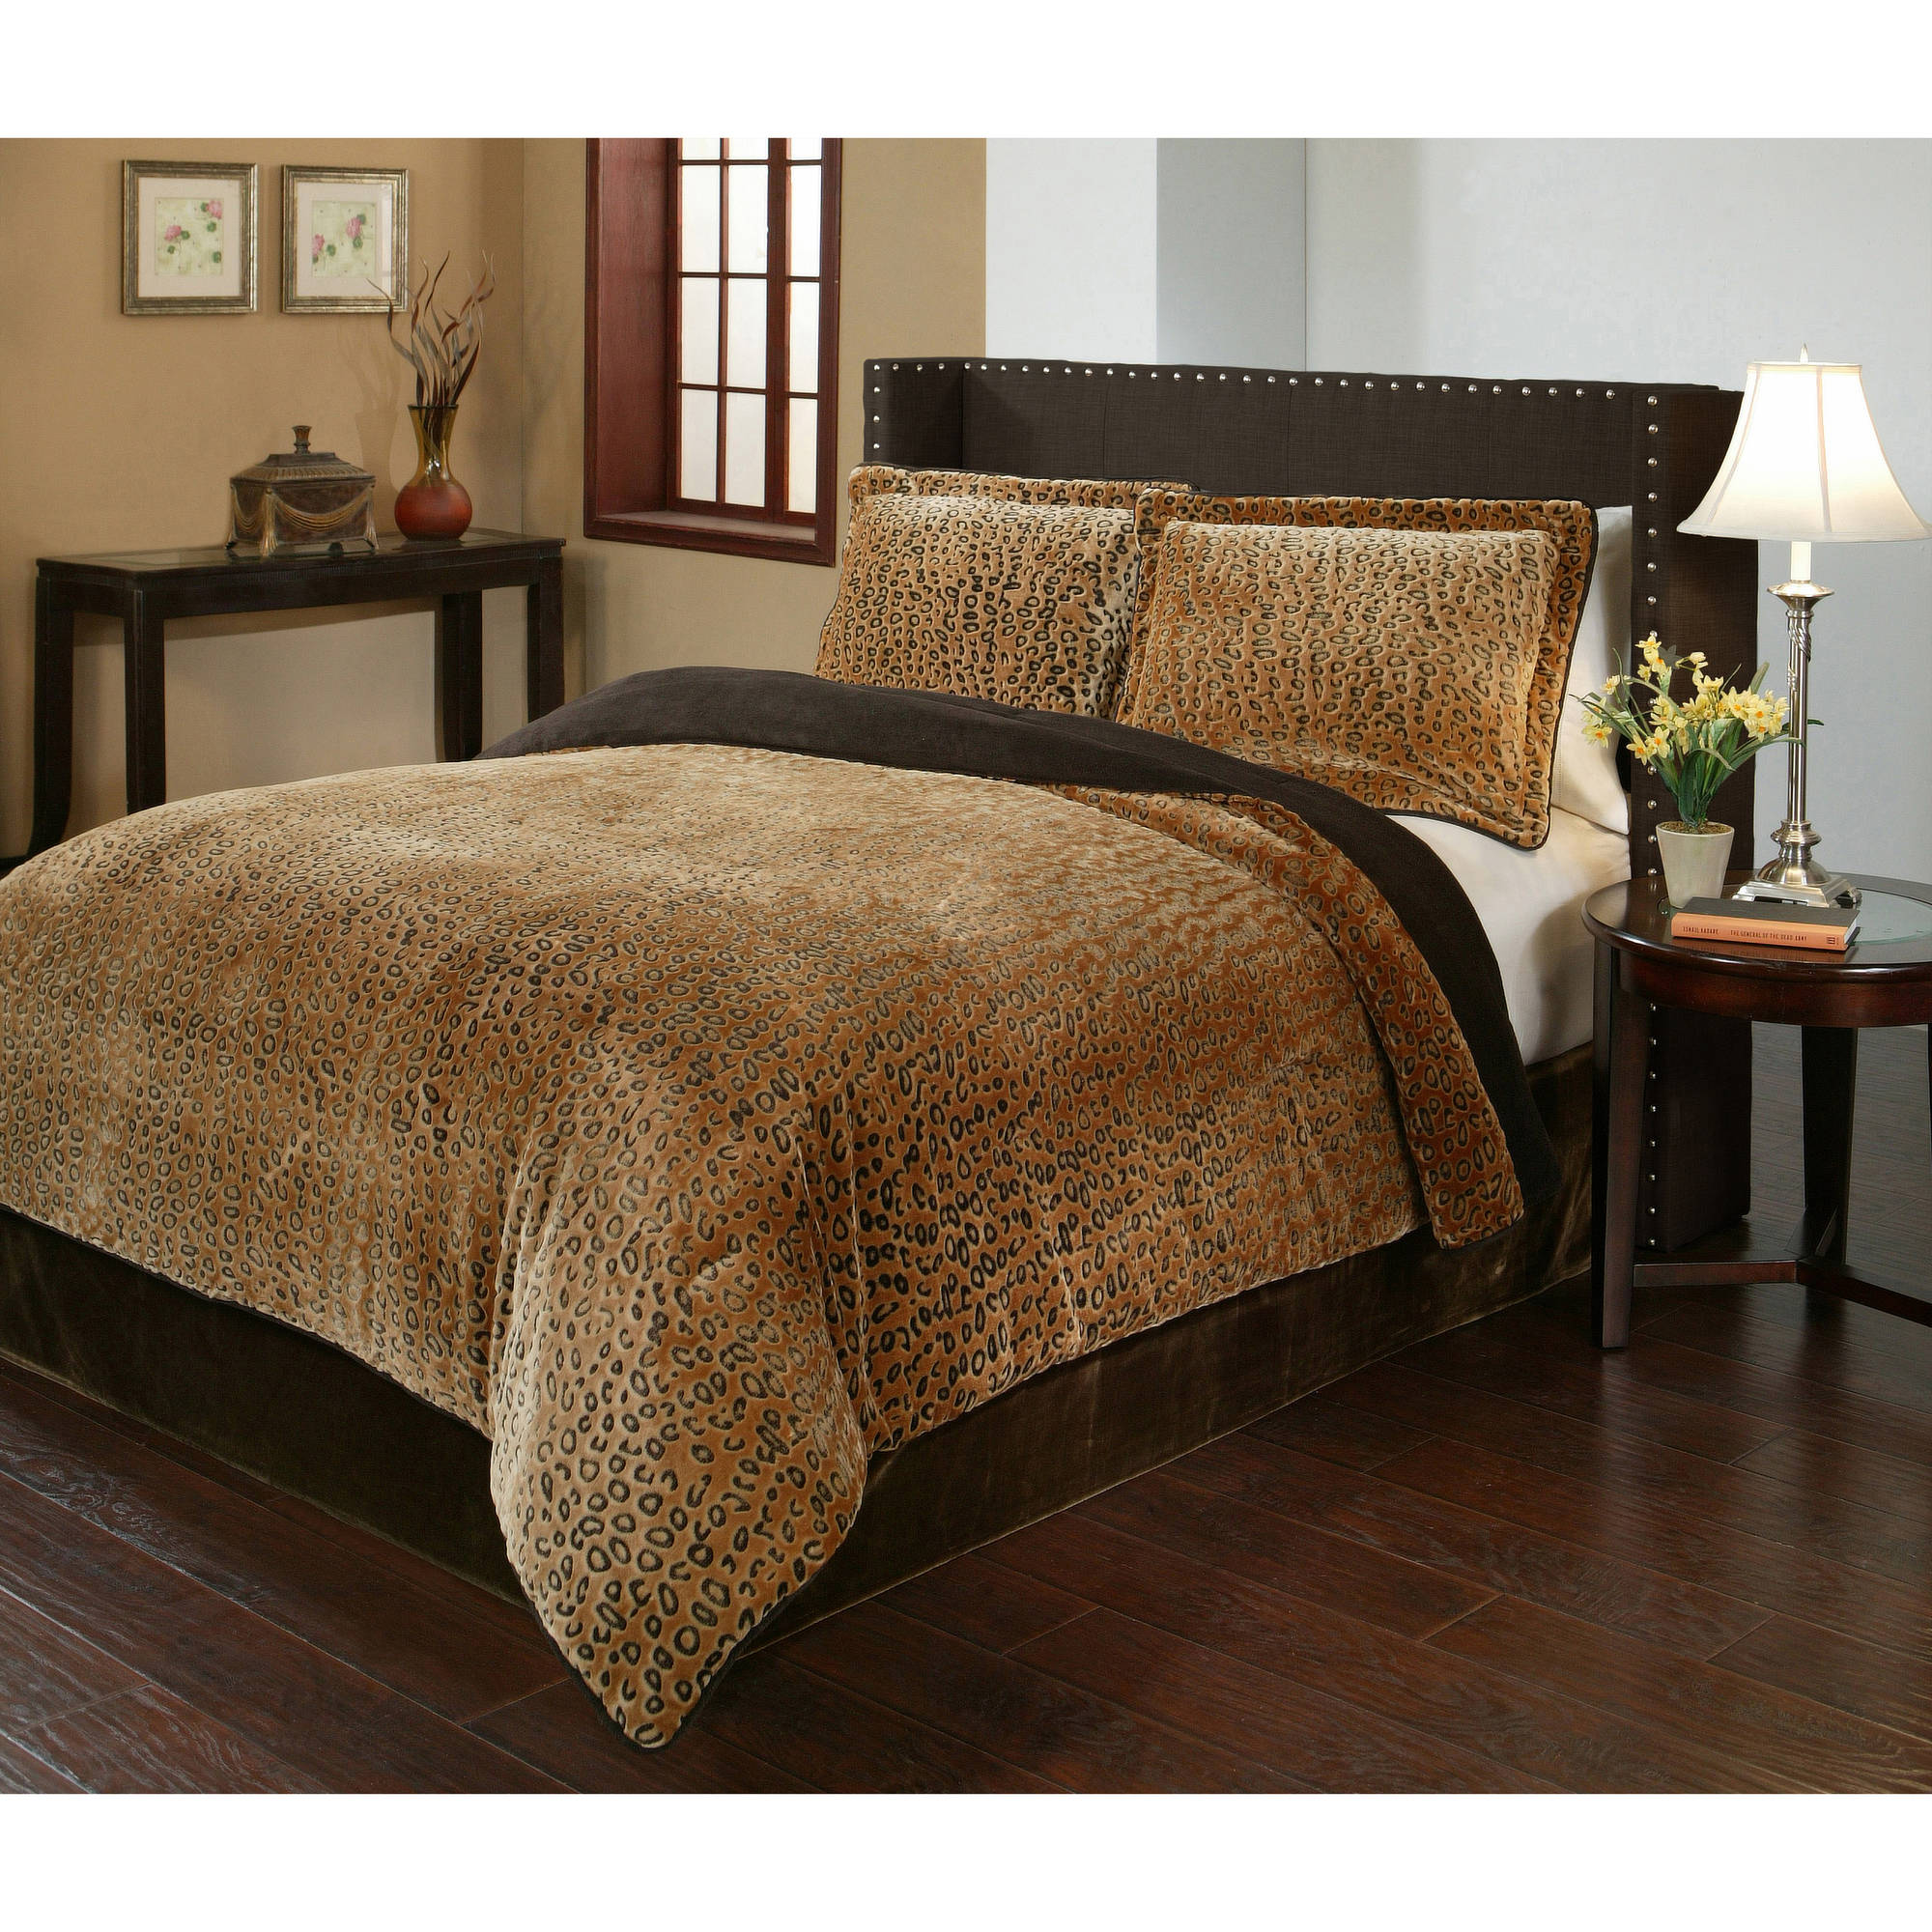 Cheetah Velvet Plush Print Bedding Comforter Mini Set